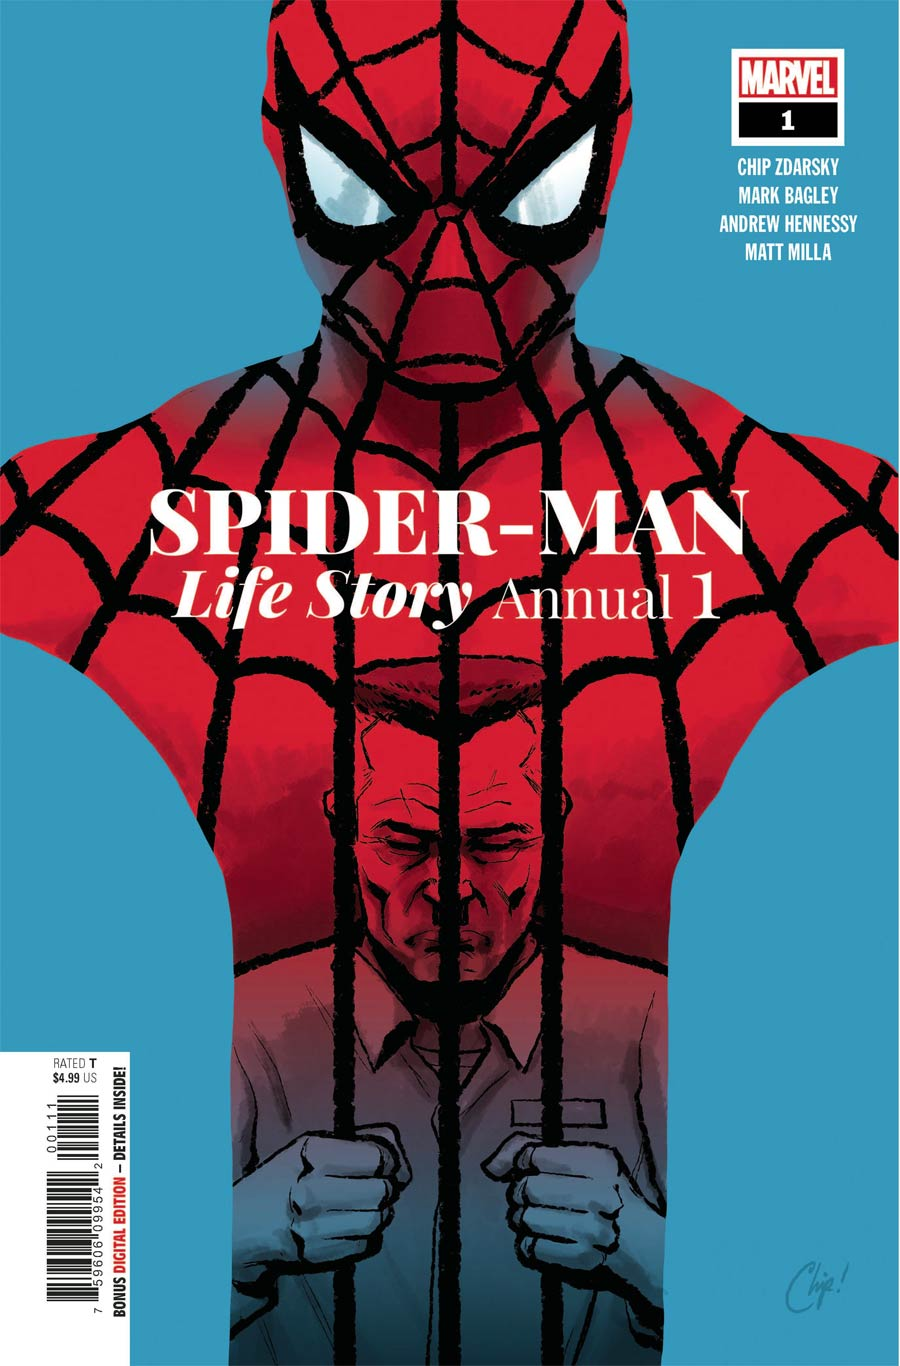 Spider-Man Life Story Annual #1 Cover A Regular Chip Zdarsky Cover